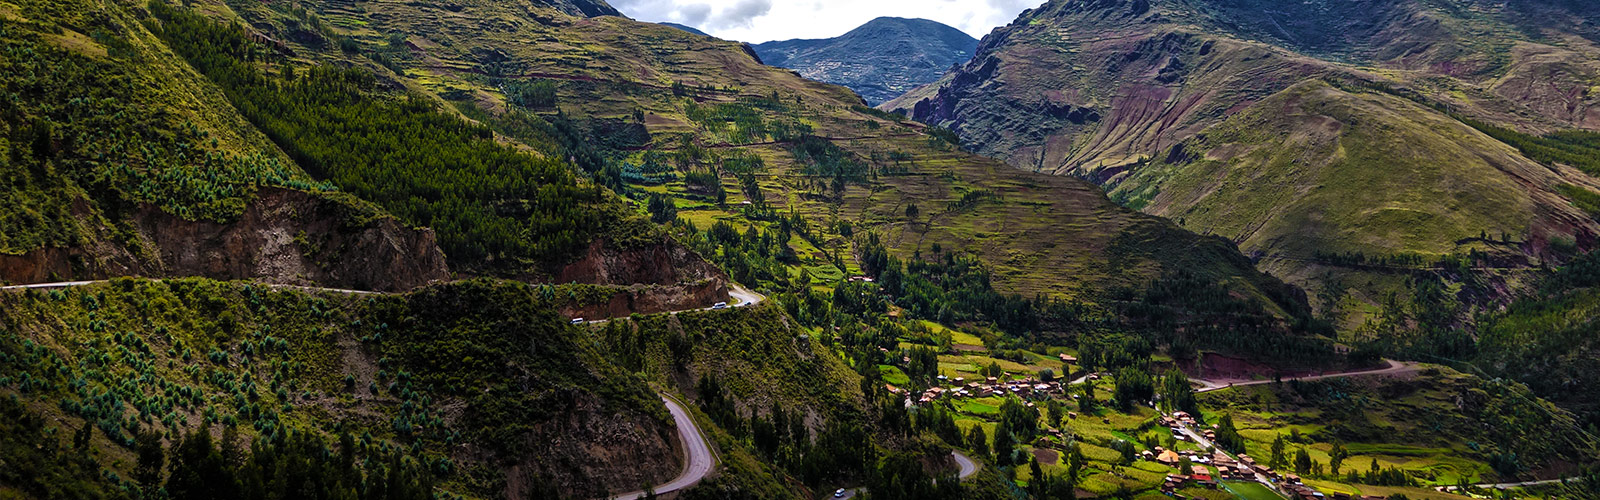 8 Day Itinerary for Peru